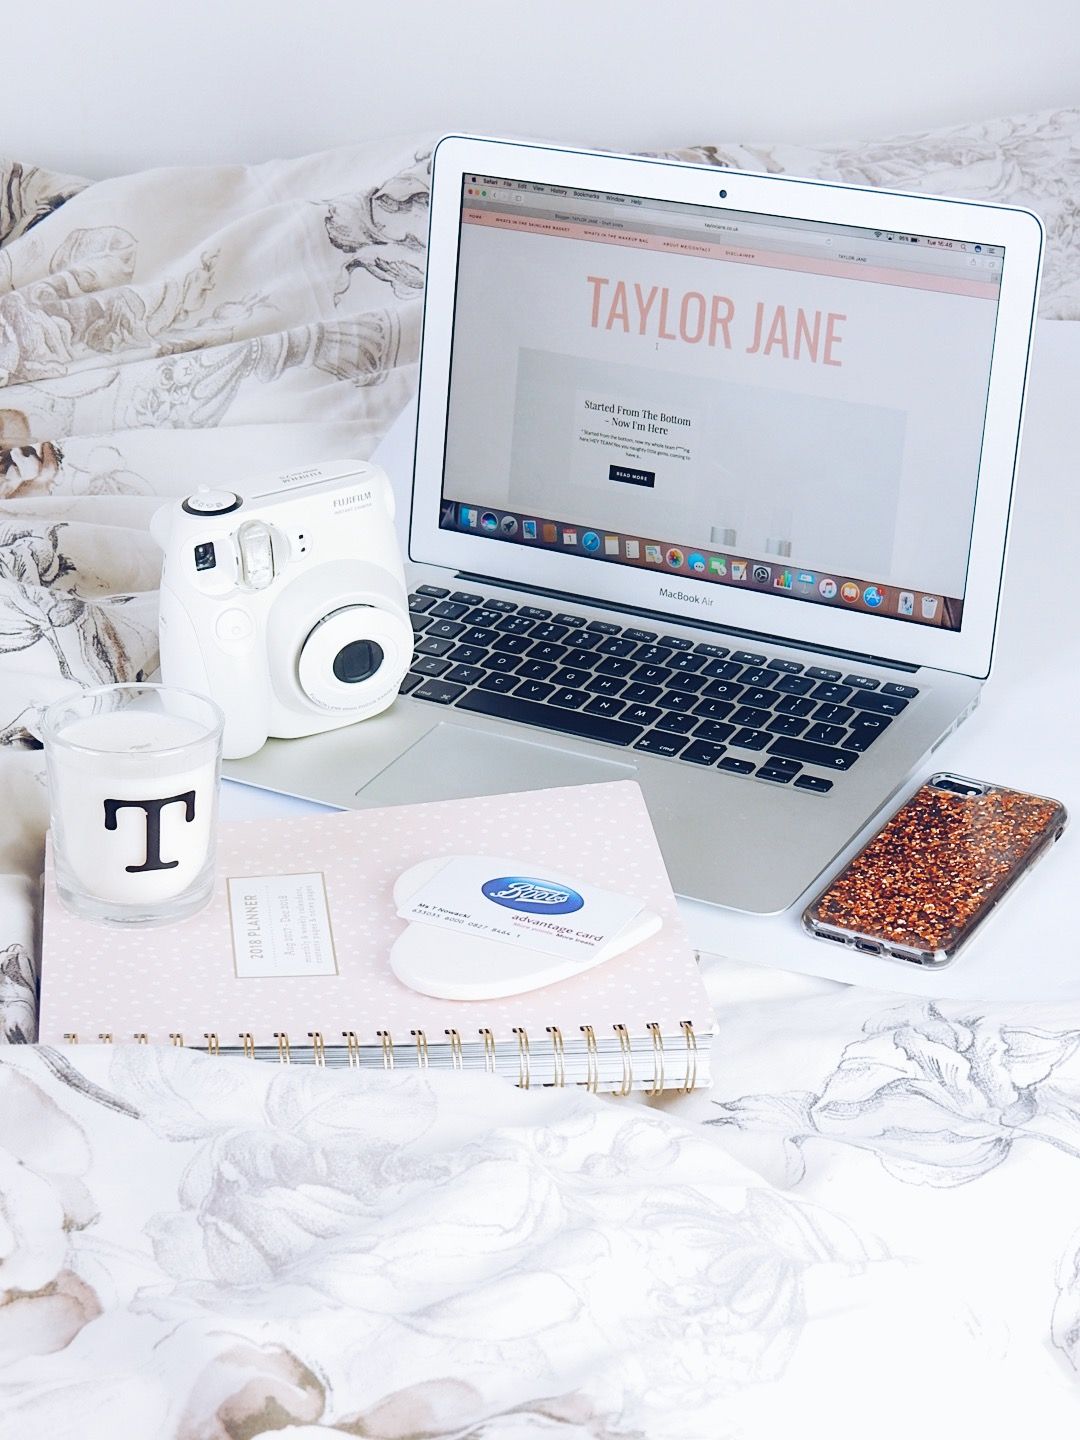 5 Of The Best Investments I've Made Through Blogging